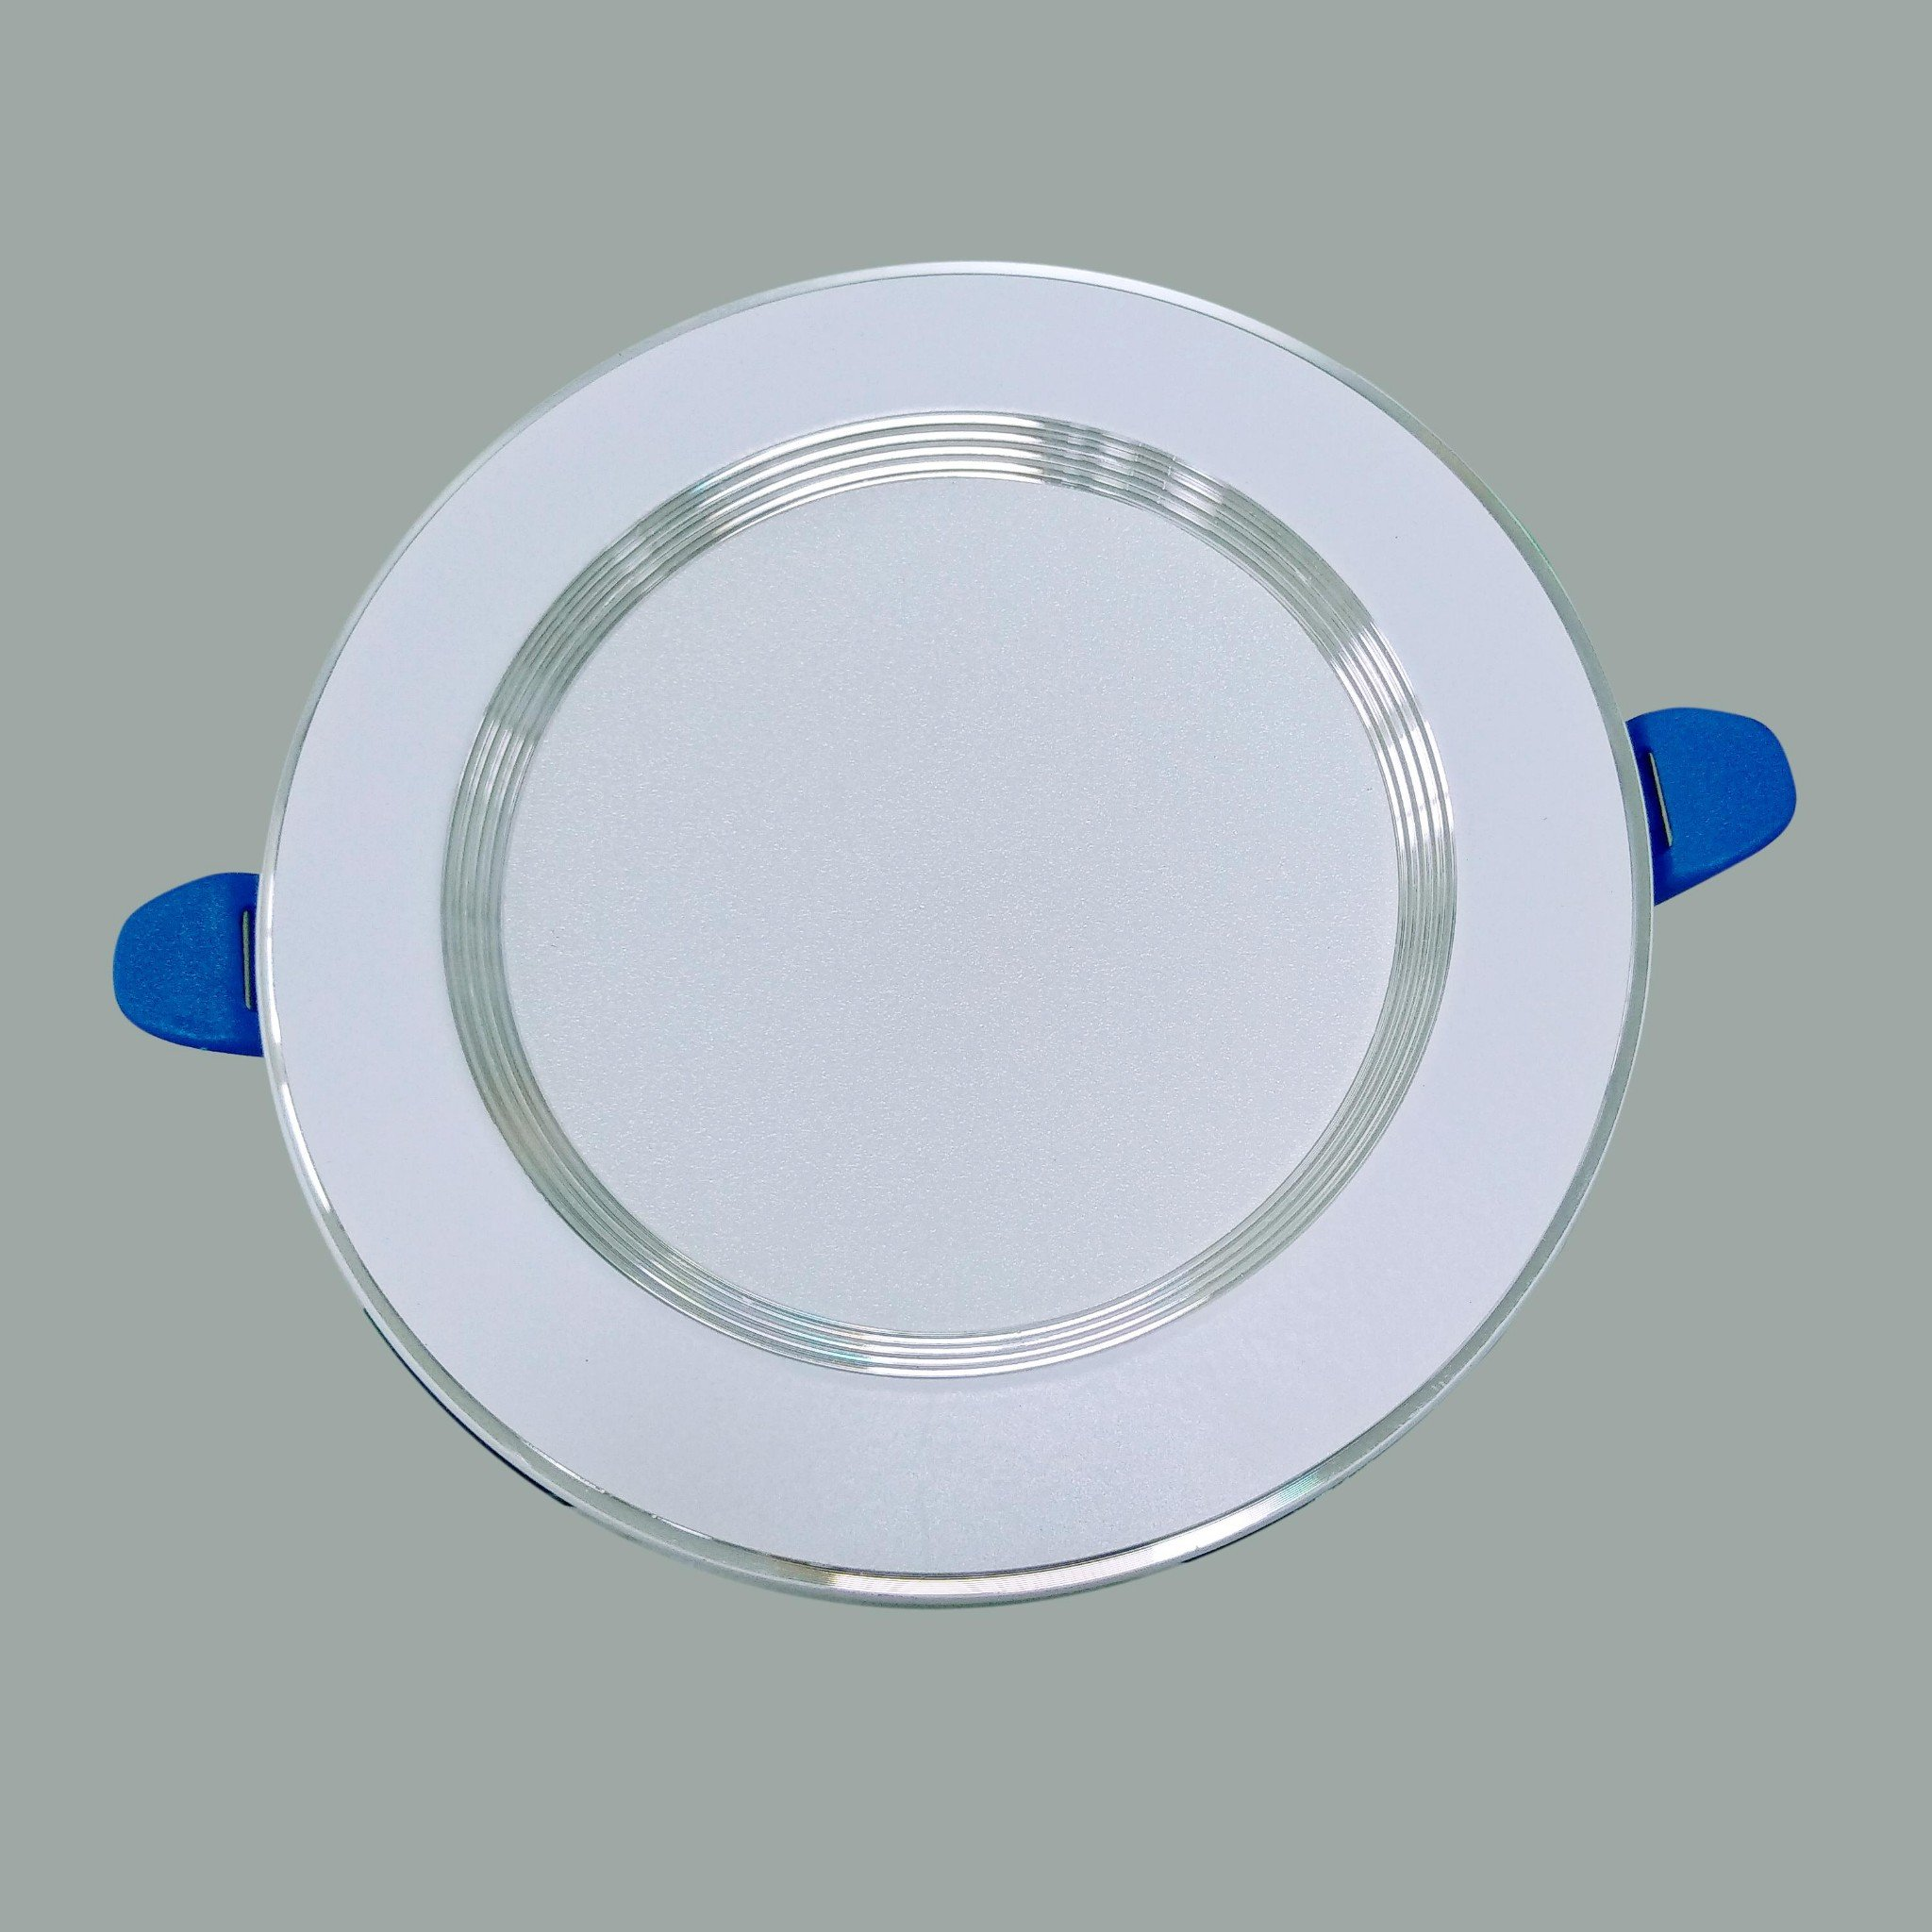 /products/den-led-downlight-vien-bac-doi-mau-d04b-5w